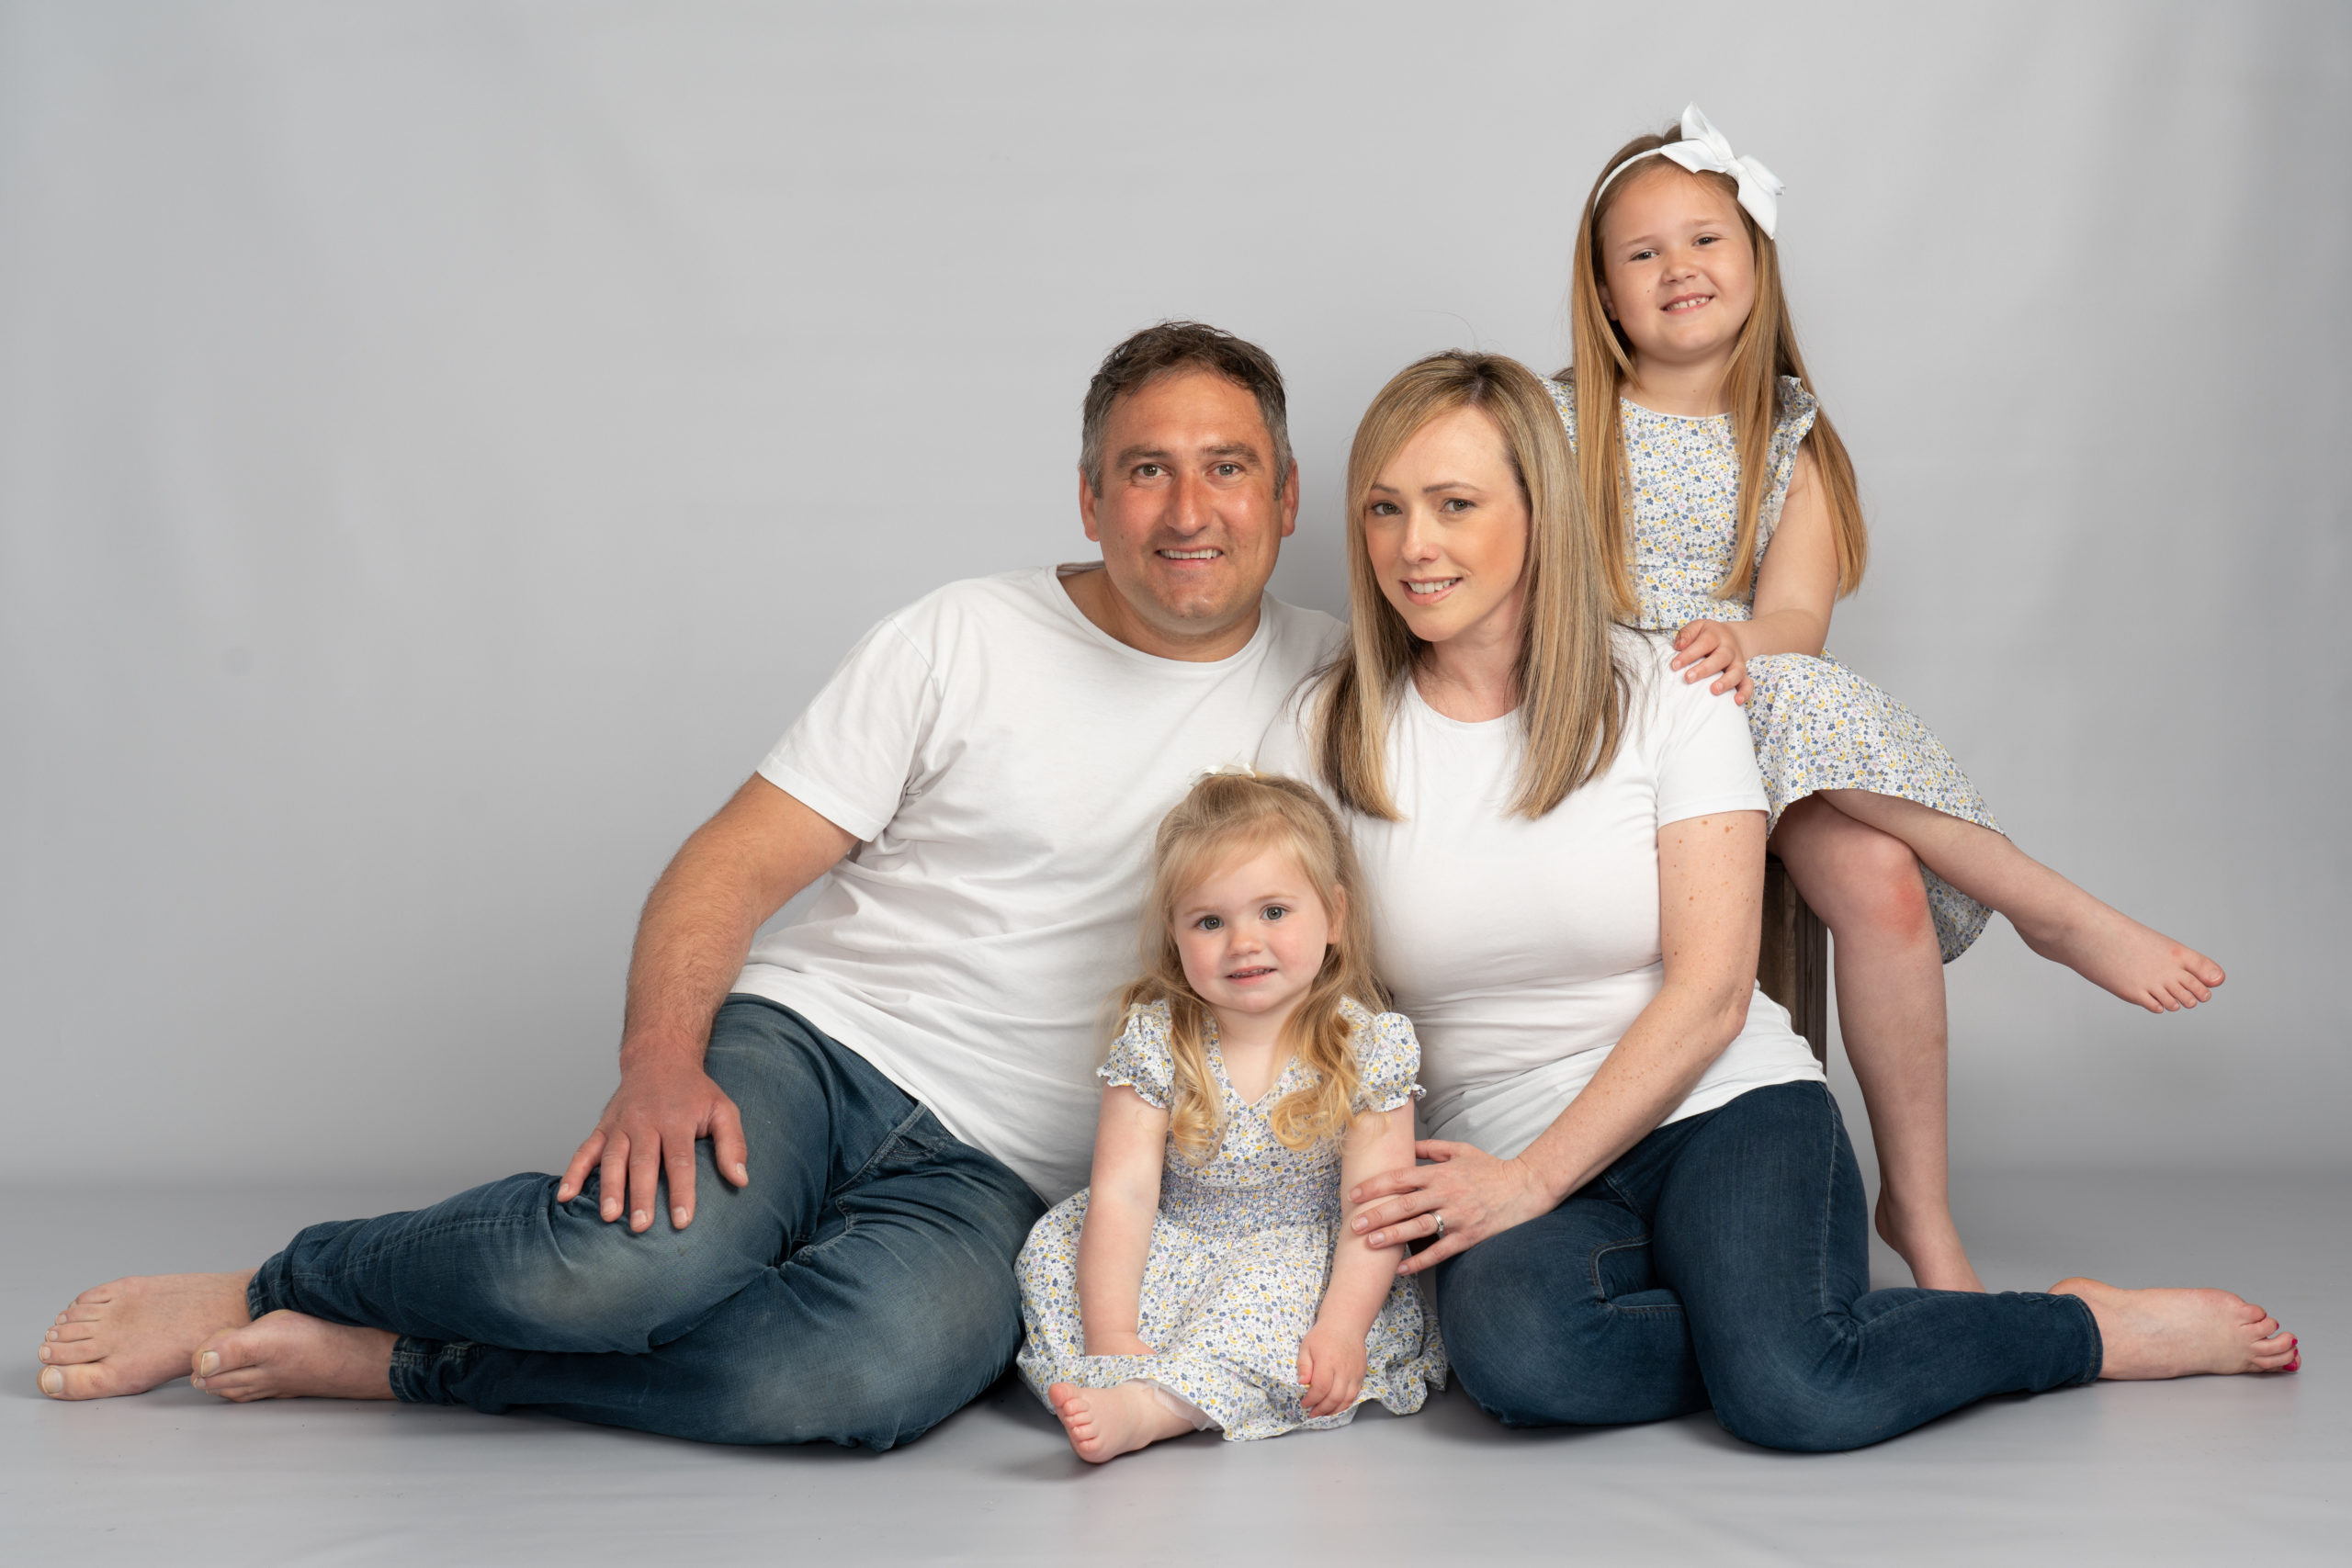 family with two young girls in white t-shirts on white background photo studio by Family photographer in preston lancashire